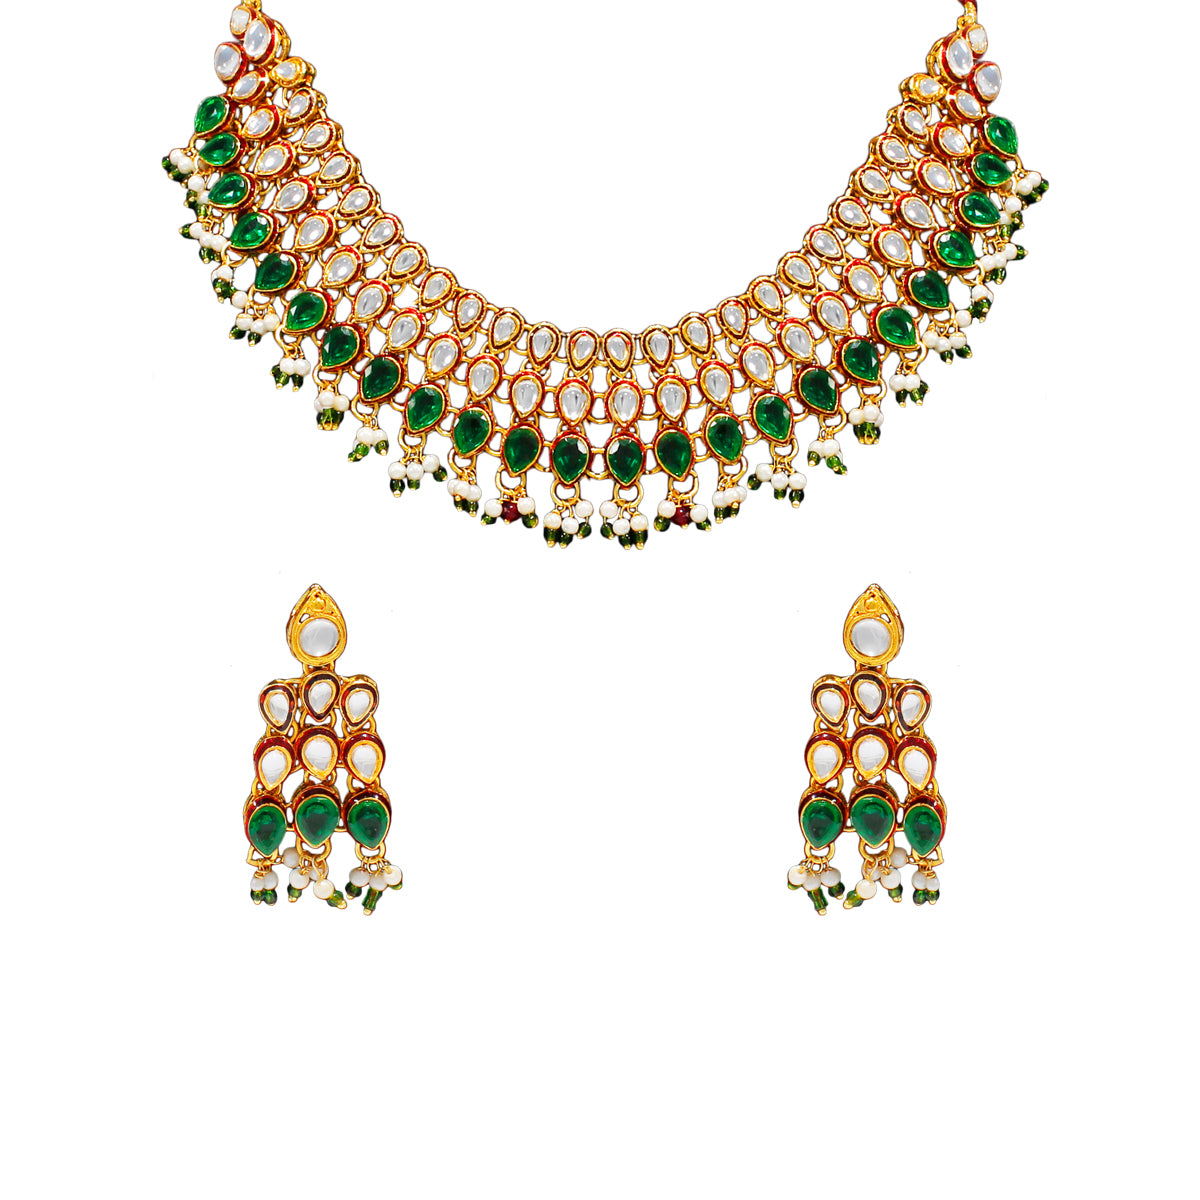 Royal Gold Plated Designer Kundan Stone Rani Har  Design Droplet shape Necklace and Earrings with White Green Stones  and Pearls